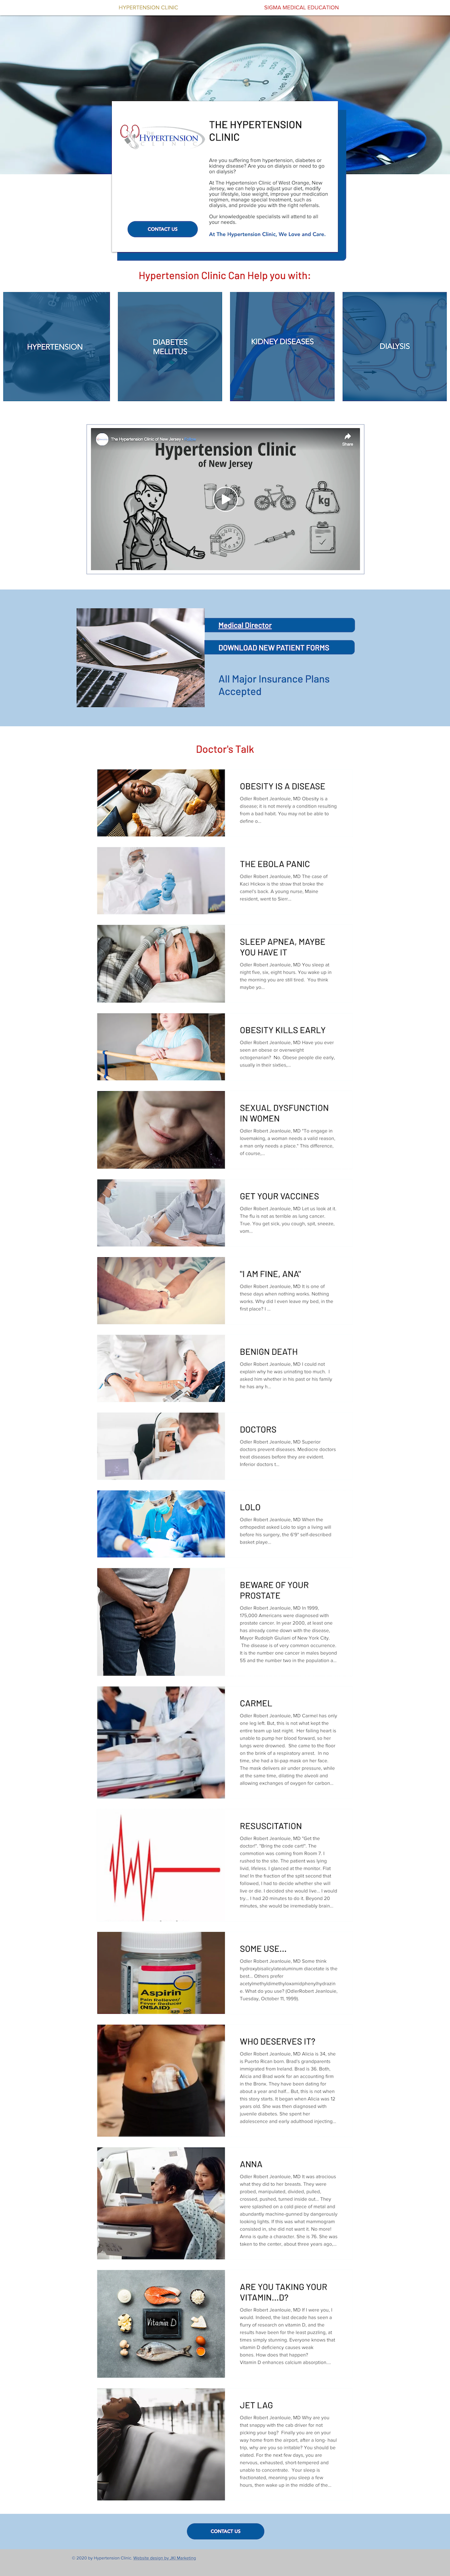 Website Design For The Hypertension Clinic